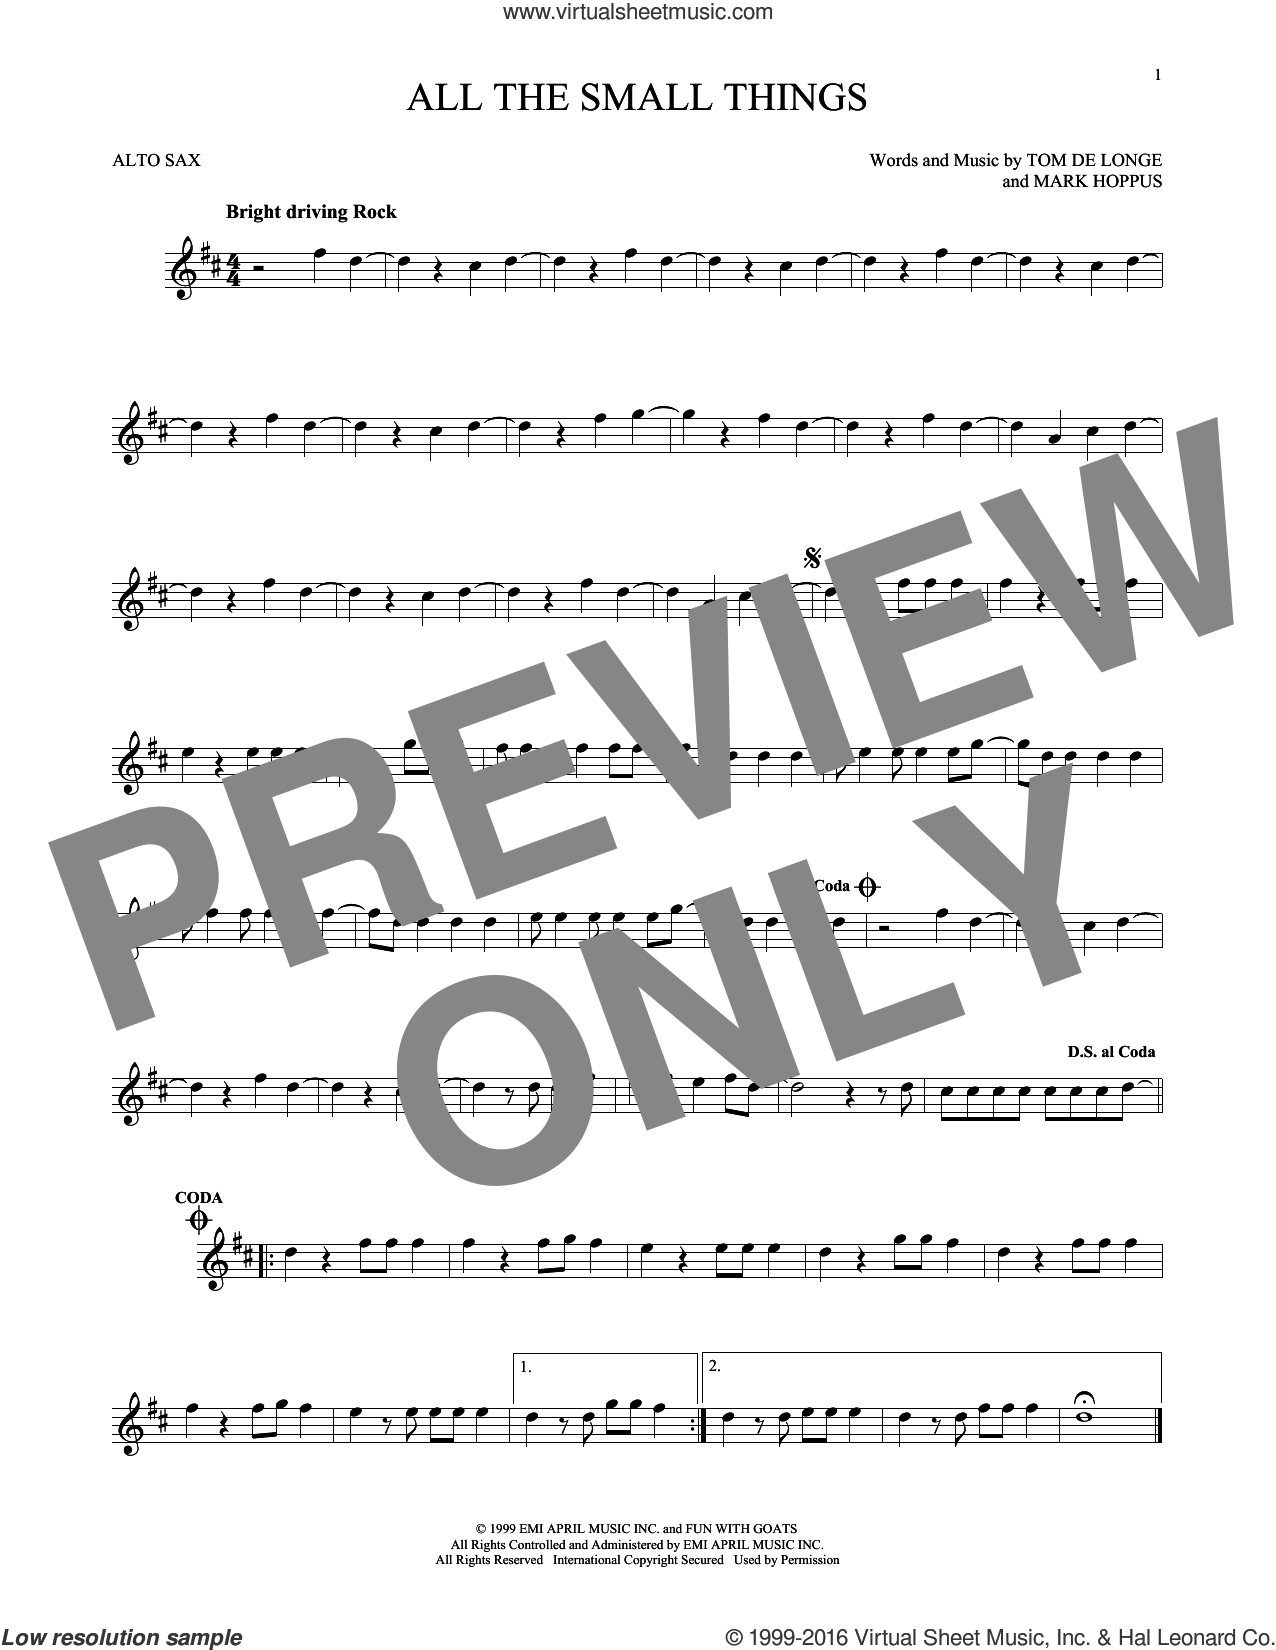 All The Small Things sheet music for alto saxophone solo by Blink 182, Mark Hoppus, Tom DeLonge and Travis Barker, intermediate skill level